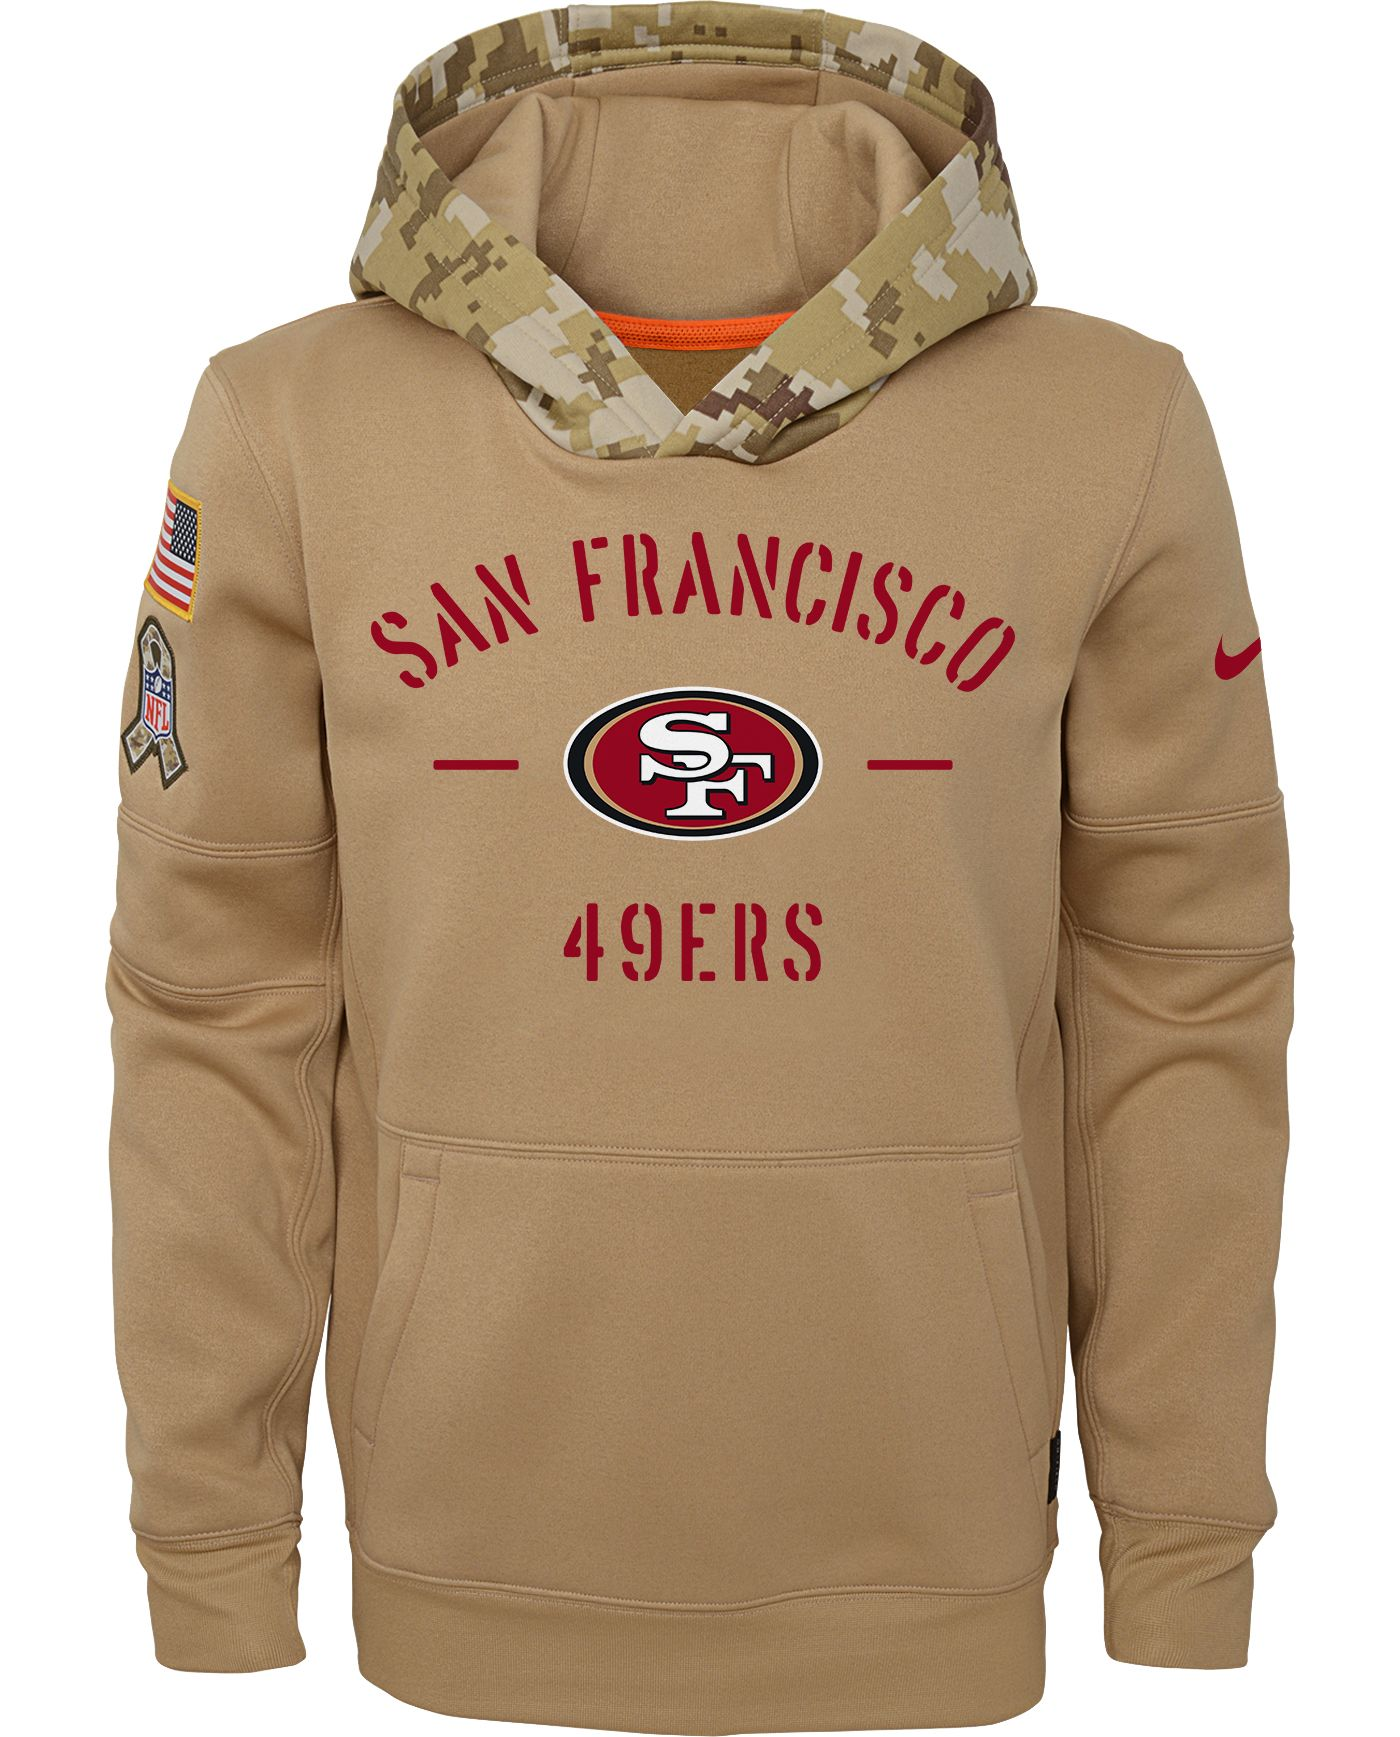 Nike Youth Salute to Service San Francisco 49ers Therma-FIT Beige Camo Hoodie